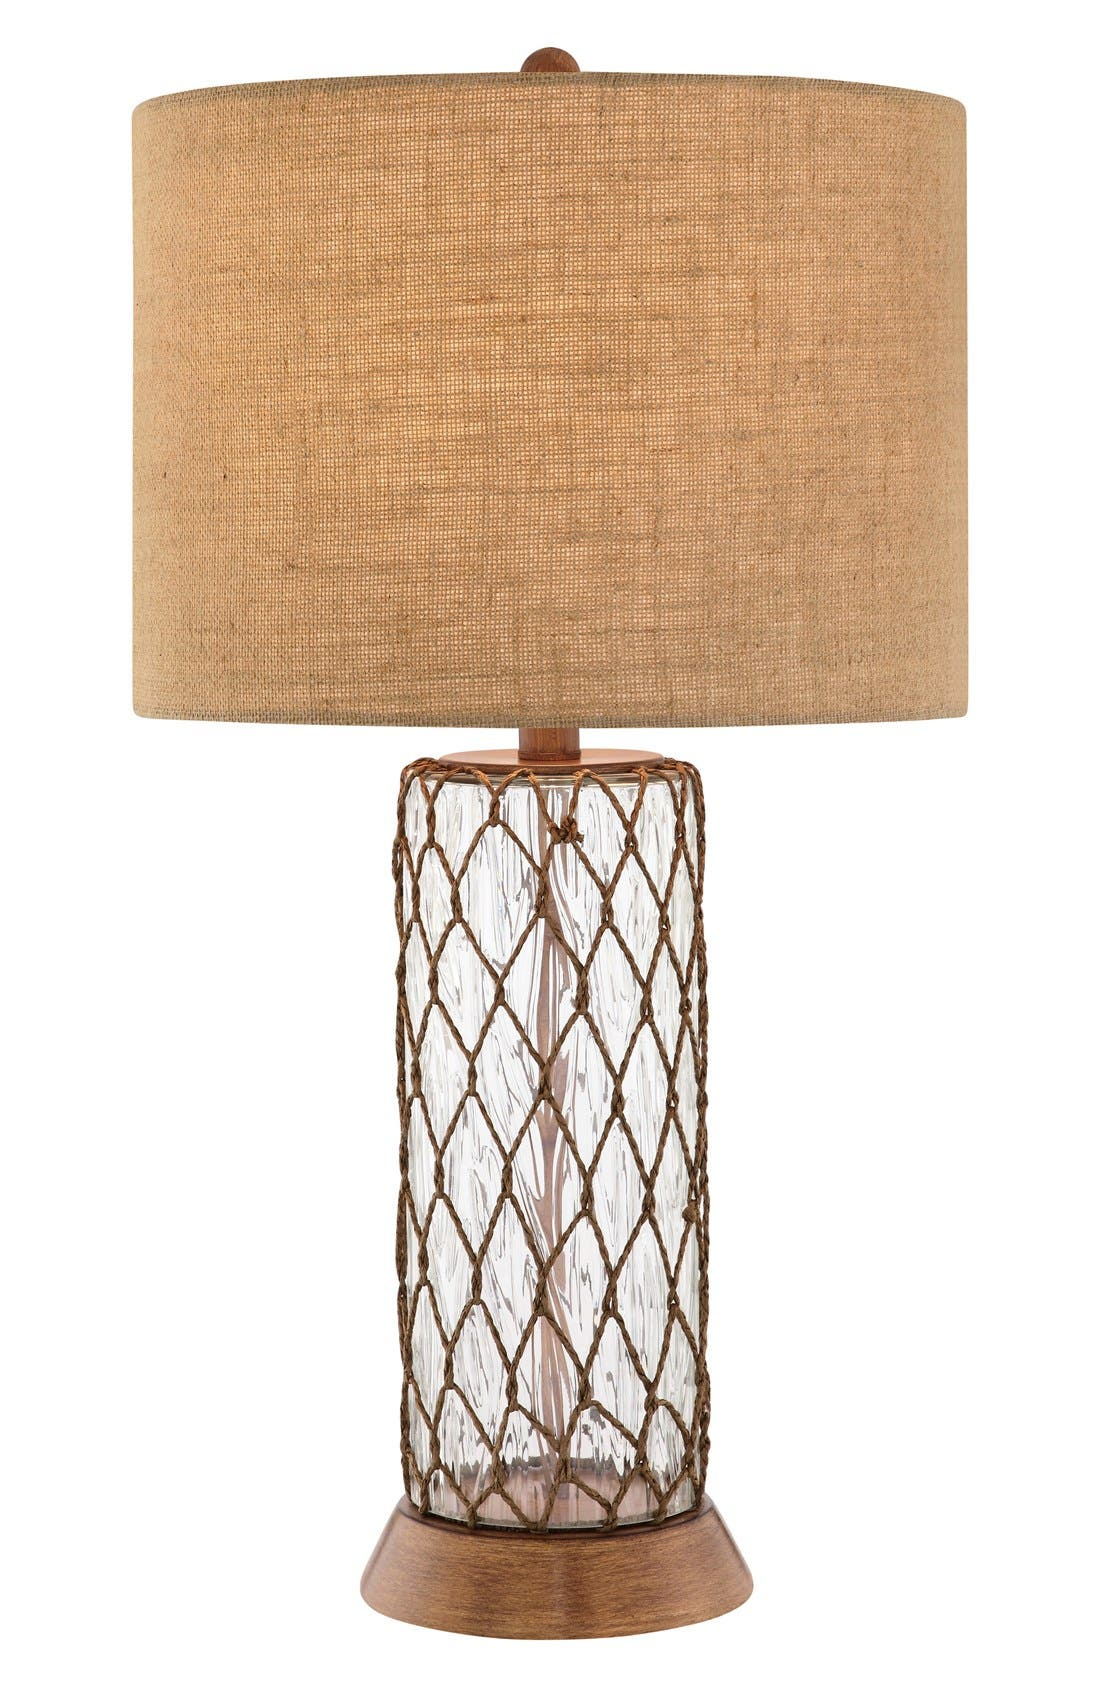 Clear Glass Table Lamp,                             Main thumbnail 1, color,                             250